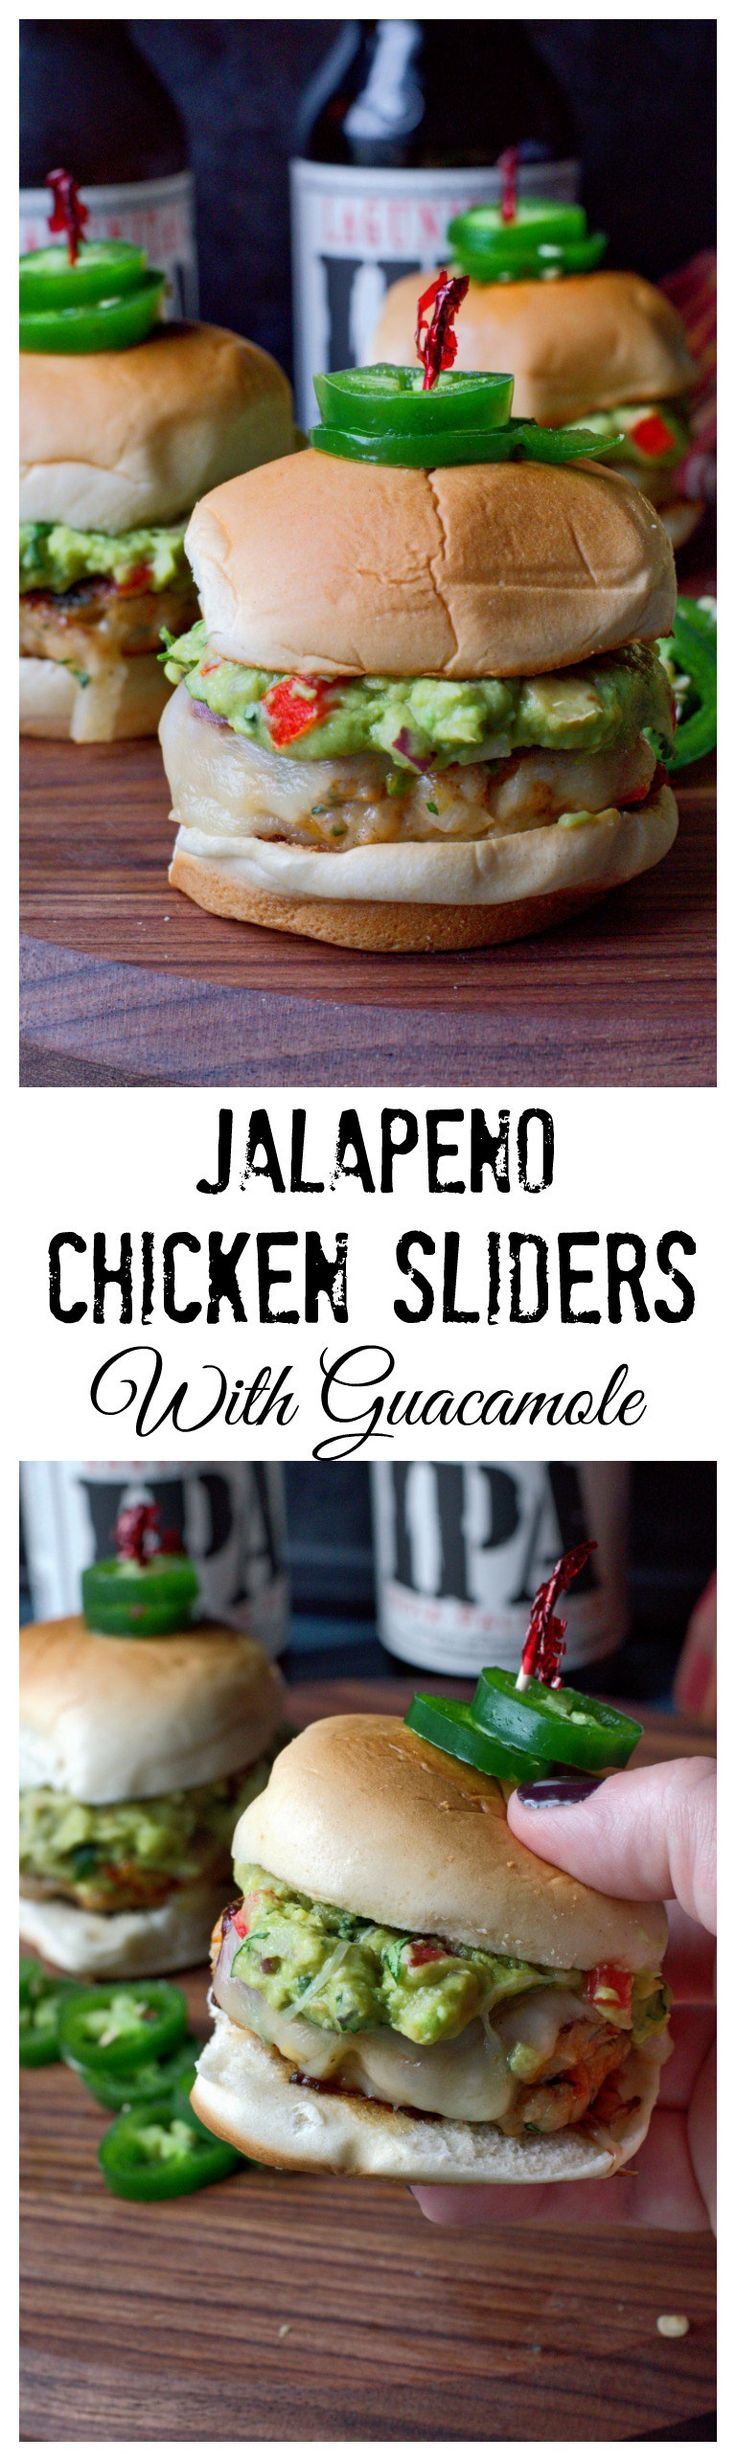 These Jalapeño Pepper Jack Chicken Sliders with Guacamole are not only adorable but delicious! Always a crowd pleaser.